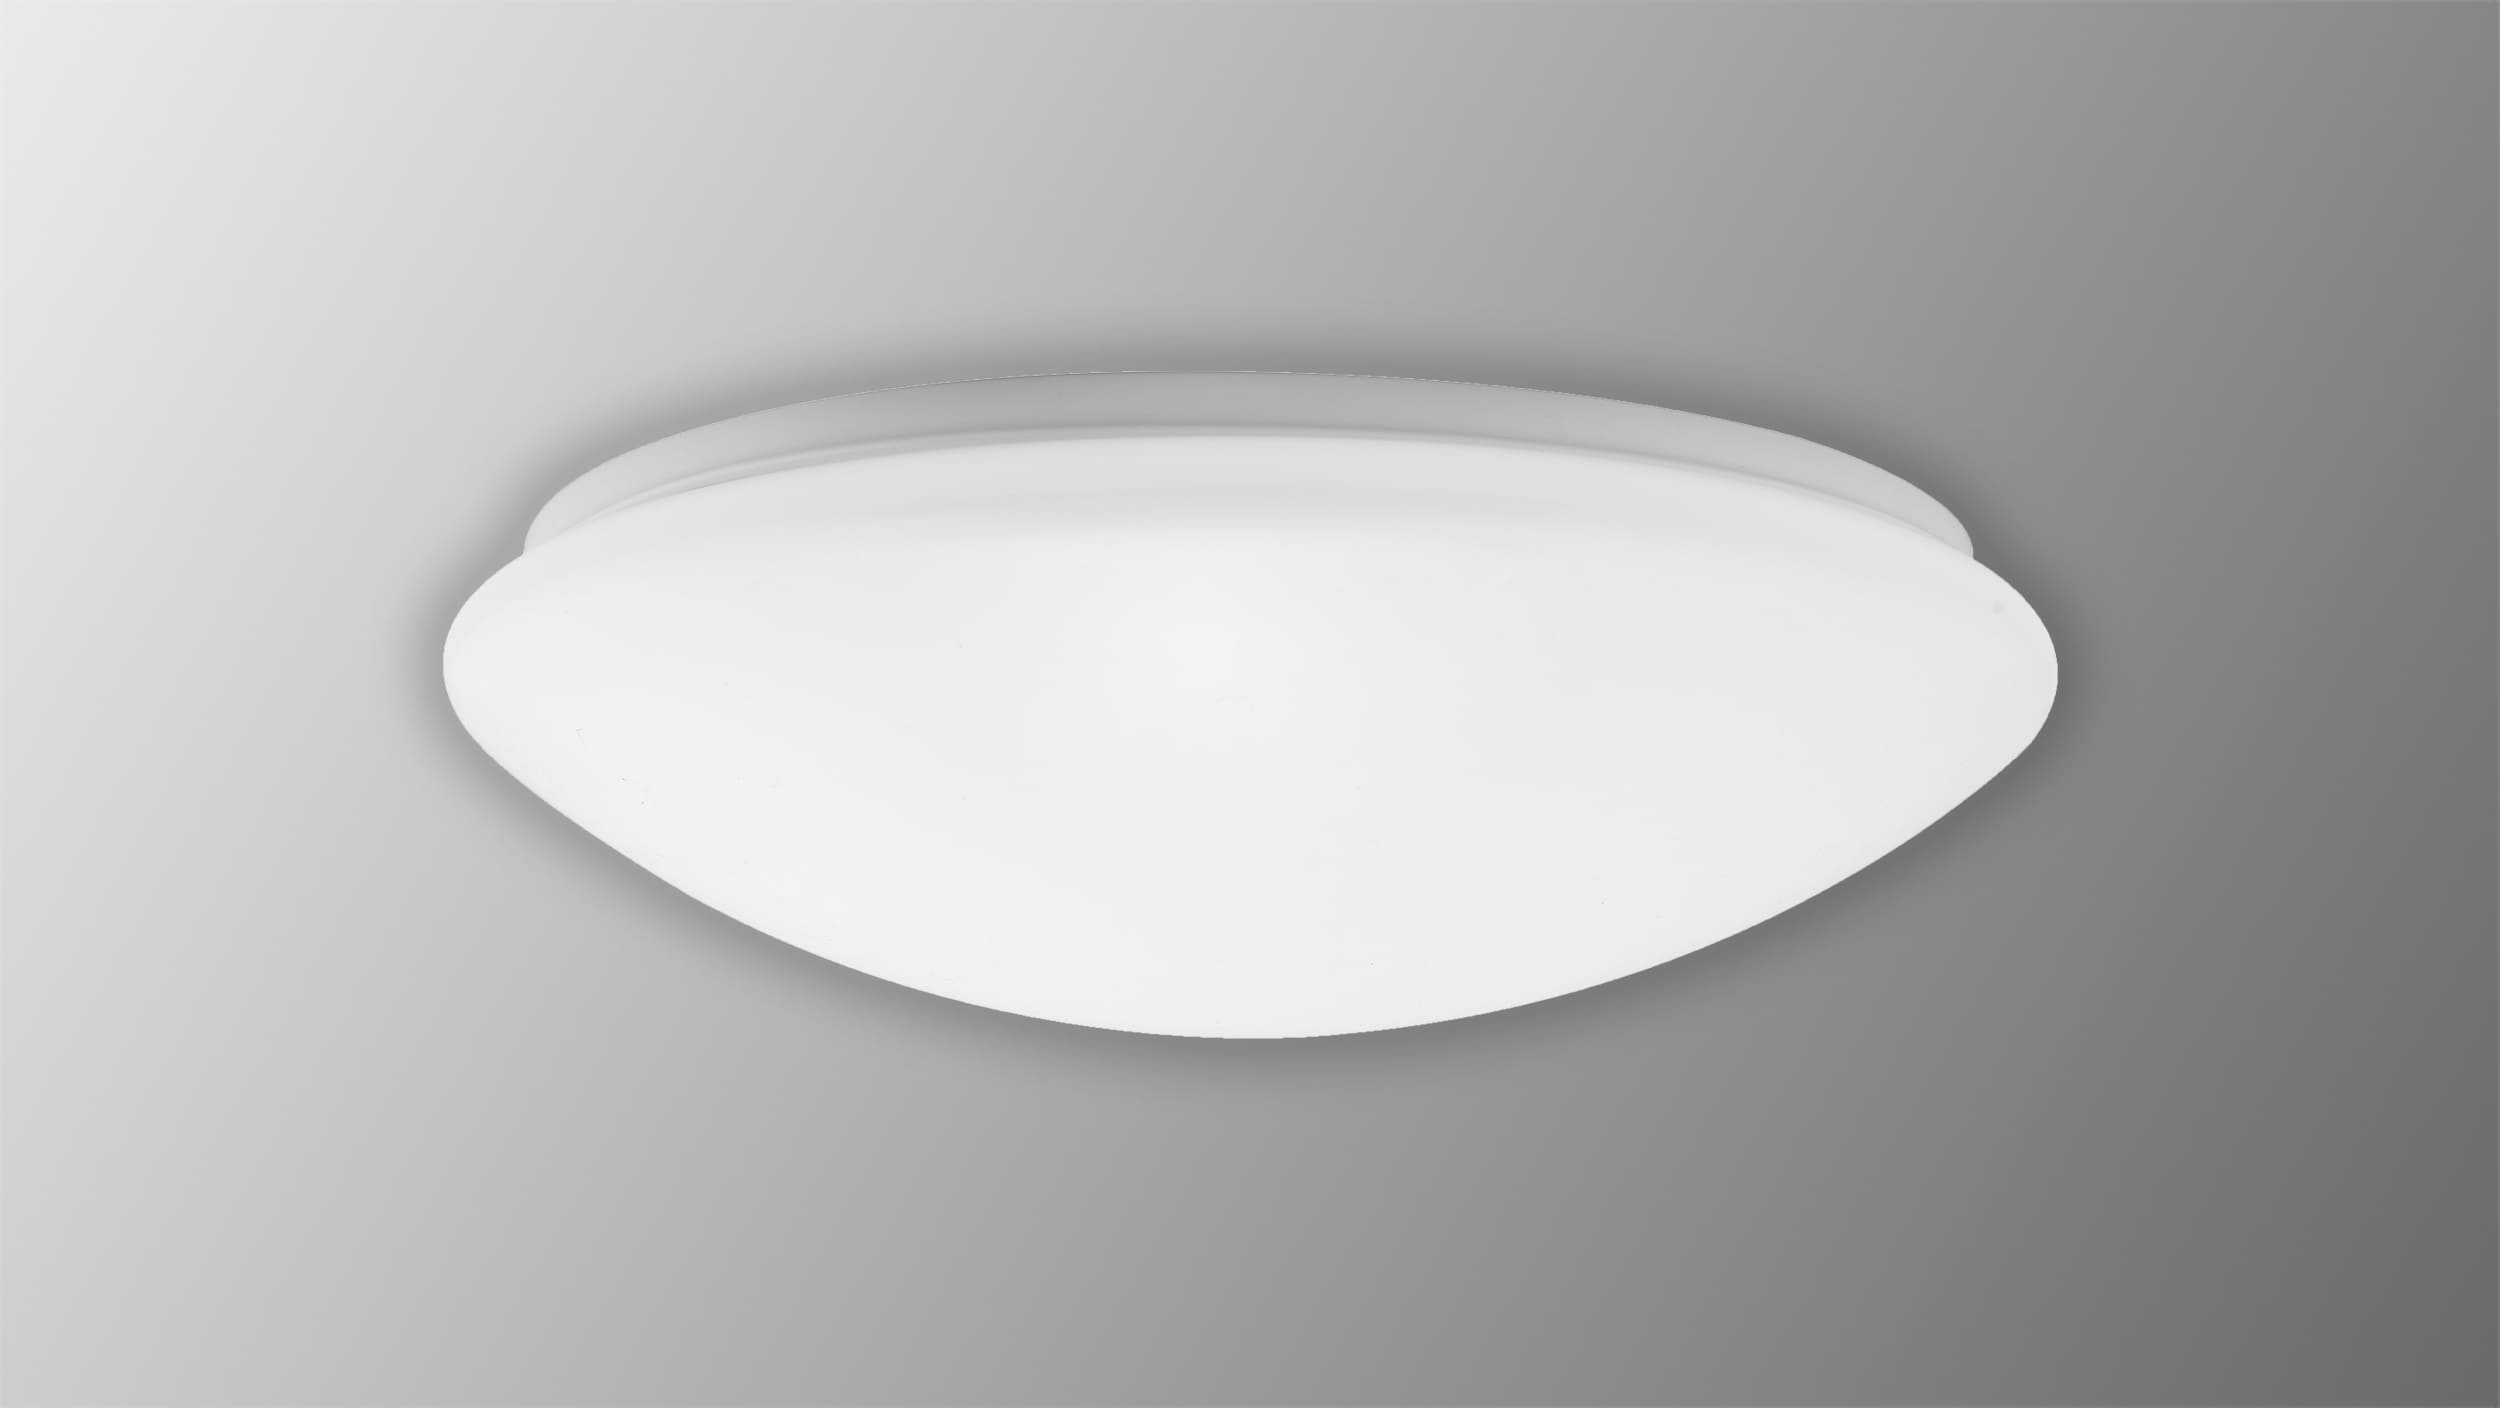 Round luminaire with light sensor